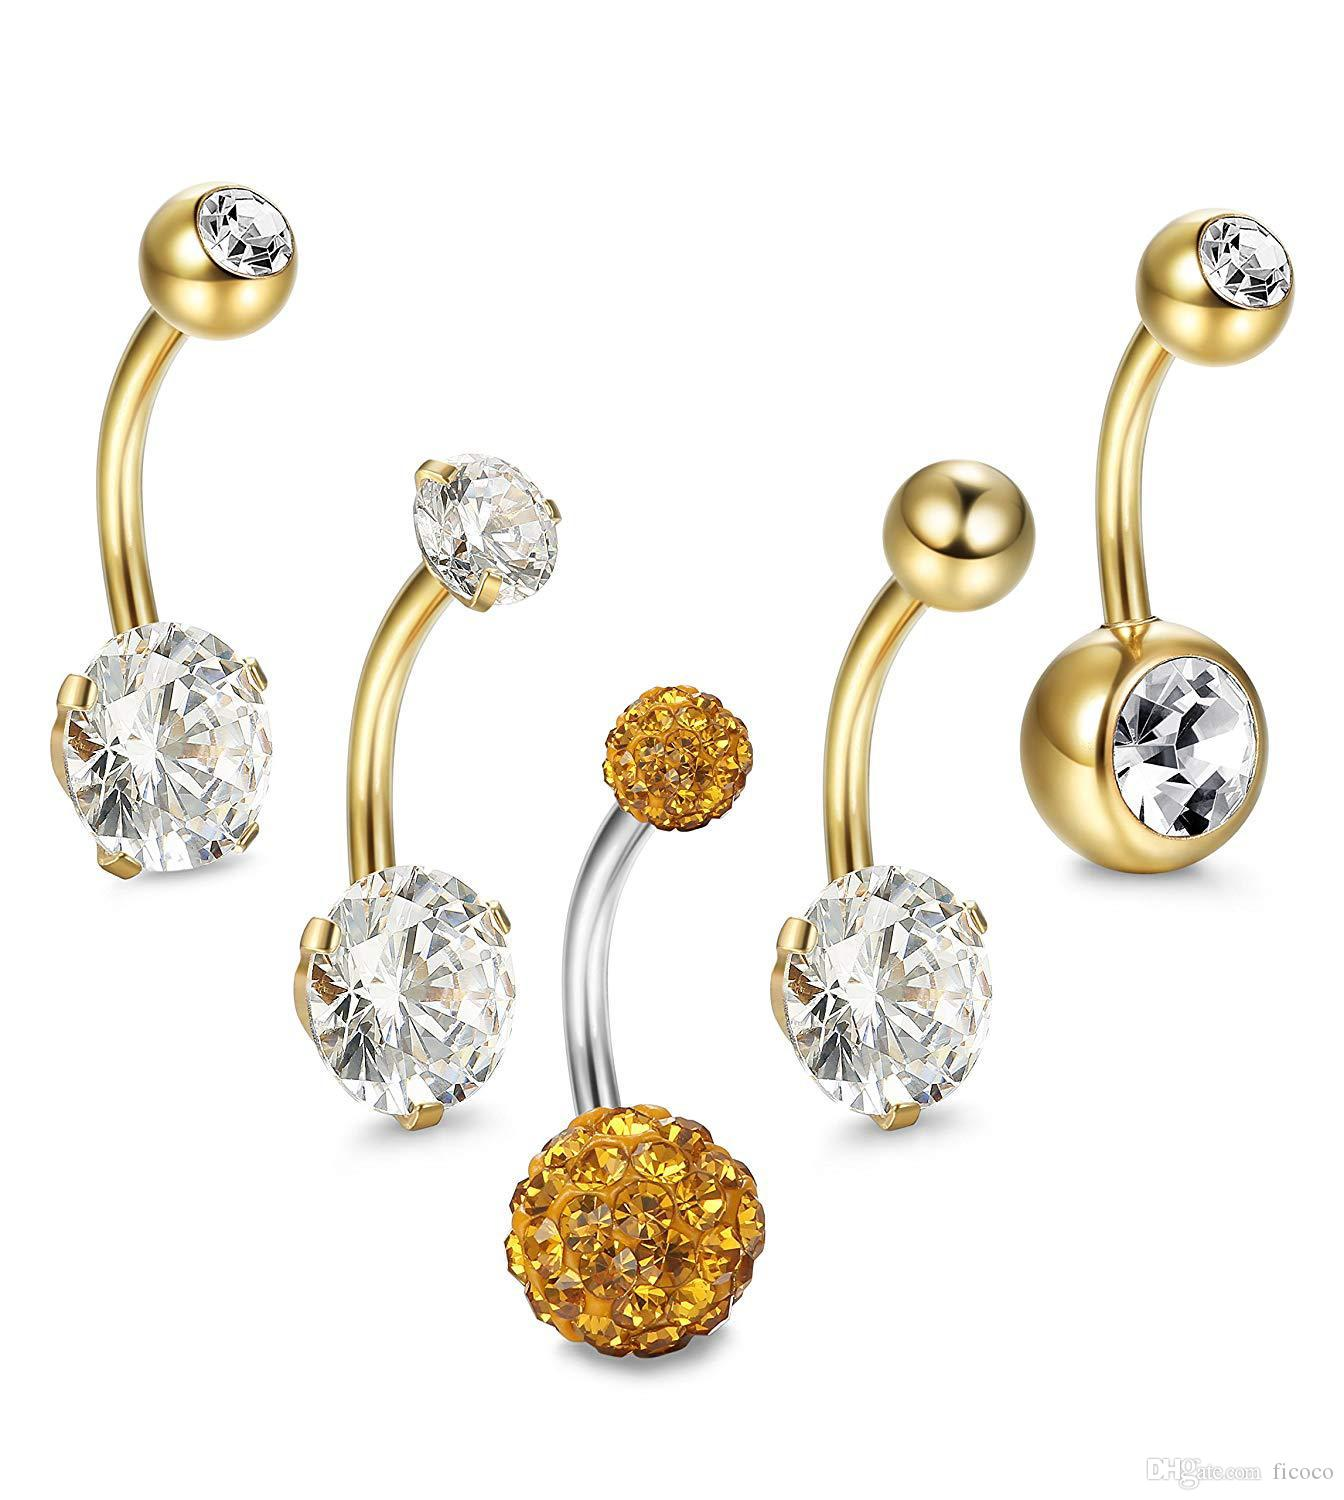 Wholesale 5pcs Set 3 Colors Cz 316l Stainless Steel Jewelry Navel Bars Silver Belly Button Ring Navel Body Piercing Jewelry